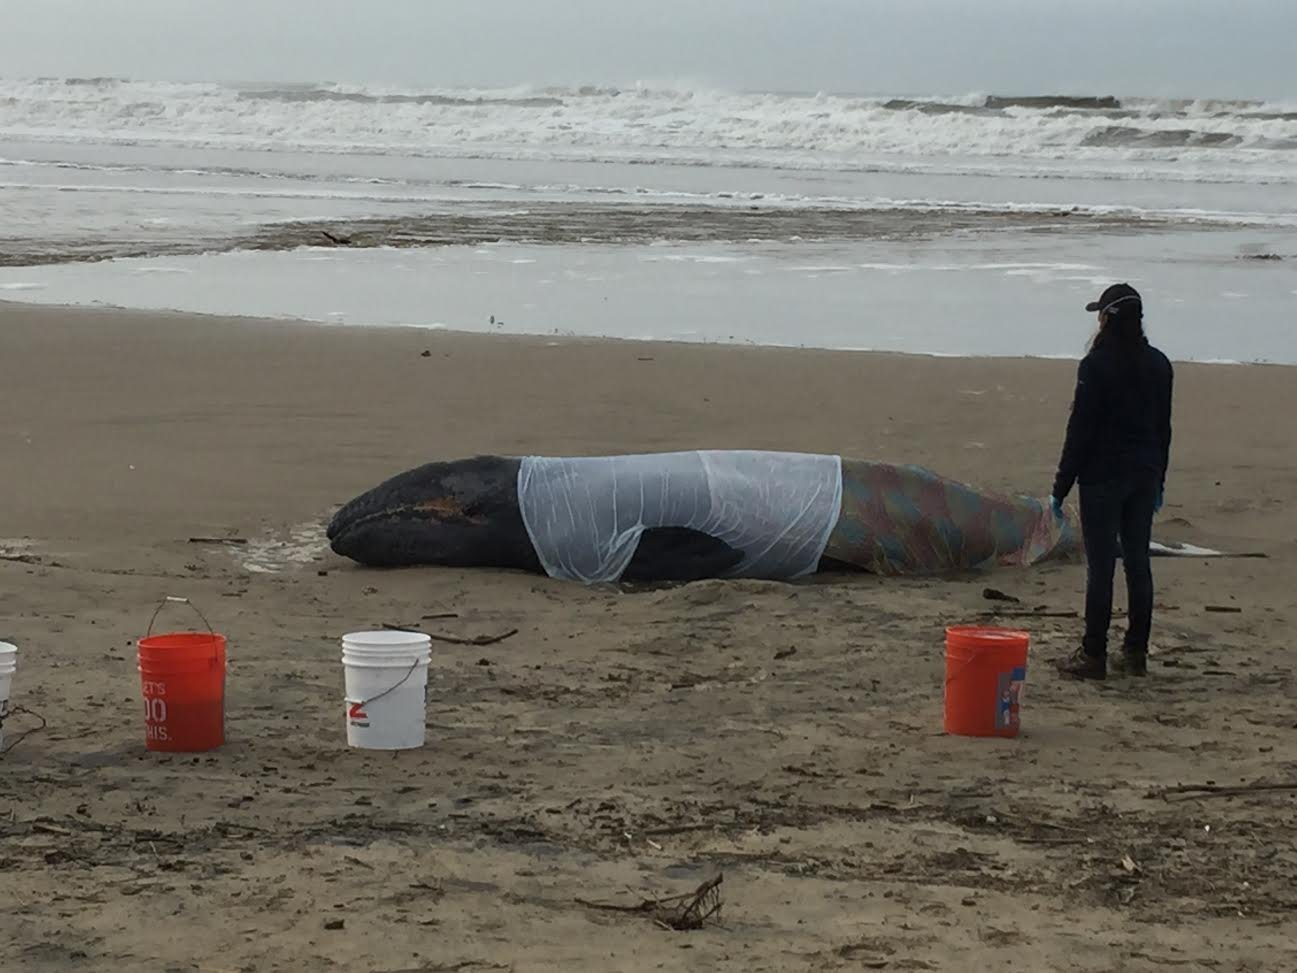 The beached whale was reported to officials at around 7:00 a.m. Tuesday. (Photo: Jason VanDyke)